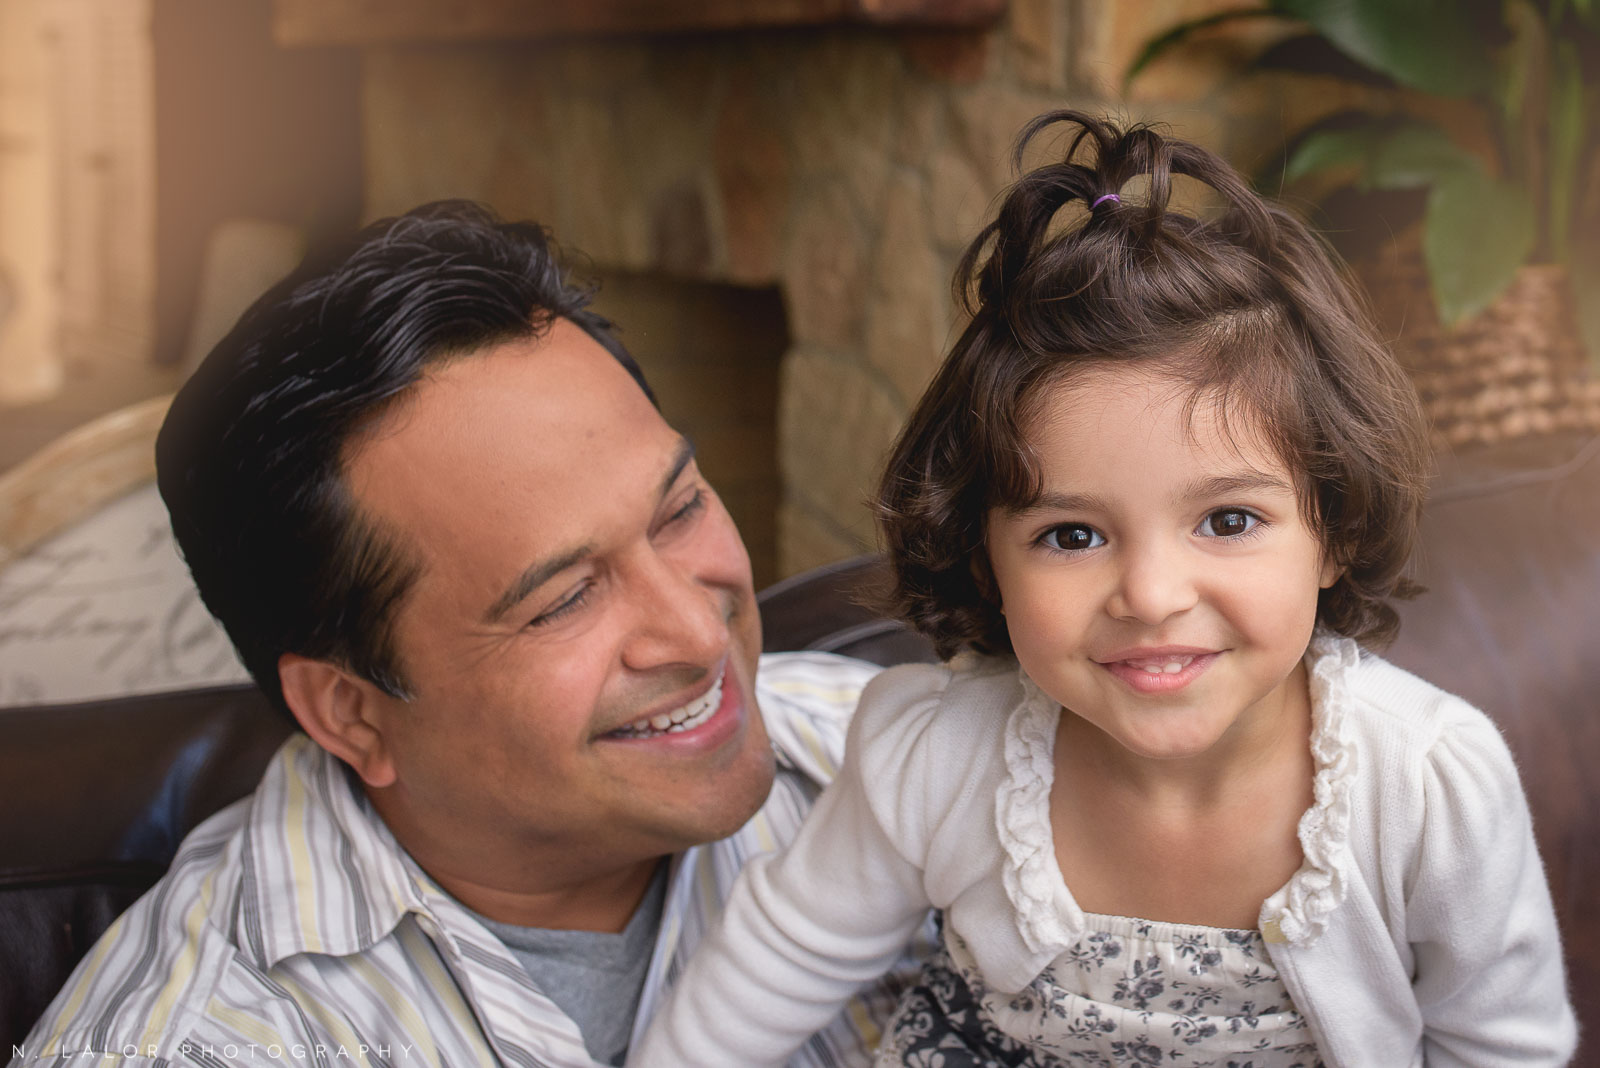 Dad with his daughter. Lifestyle portrait by N. Lalor Photography.